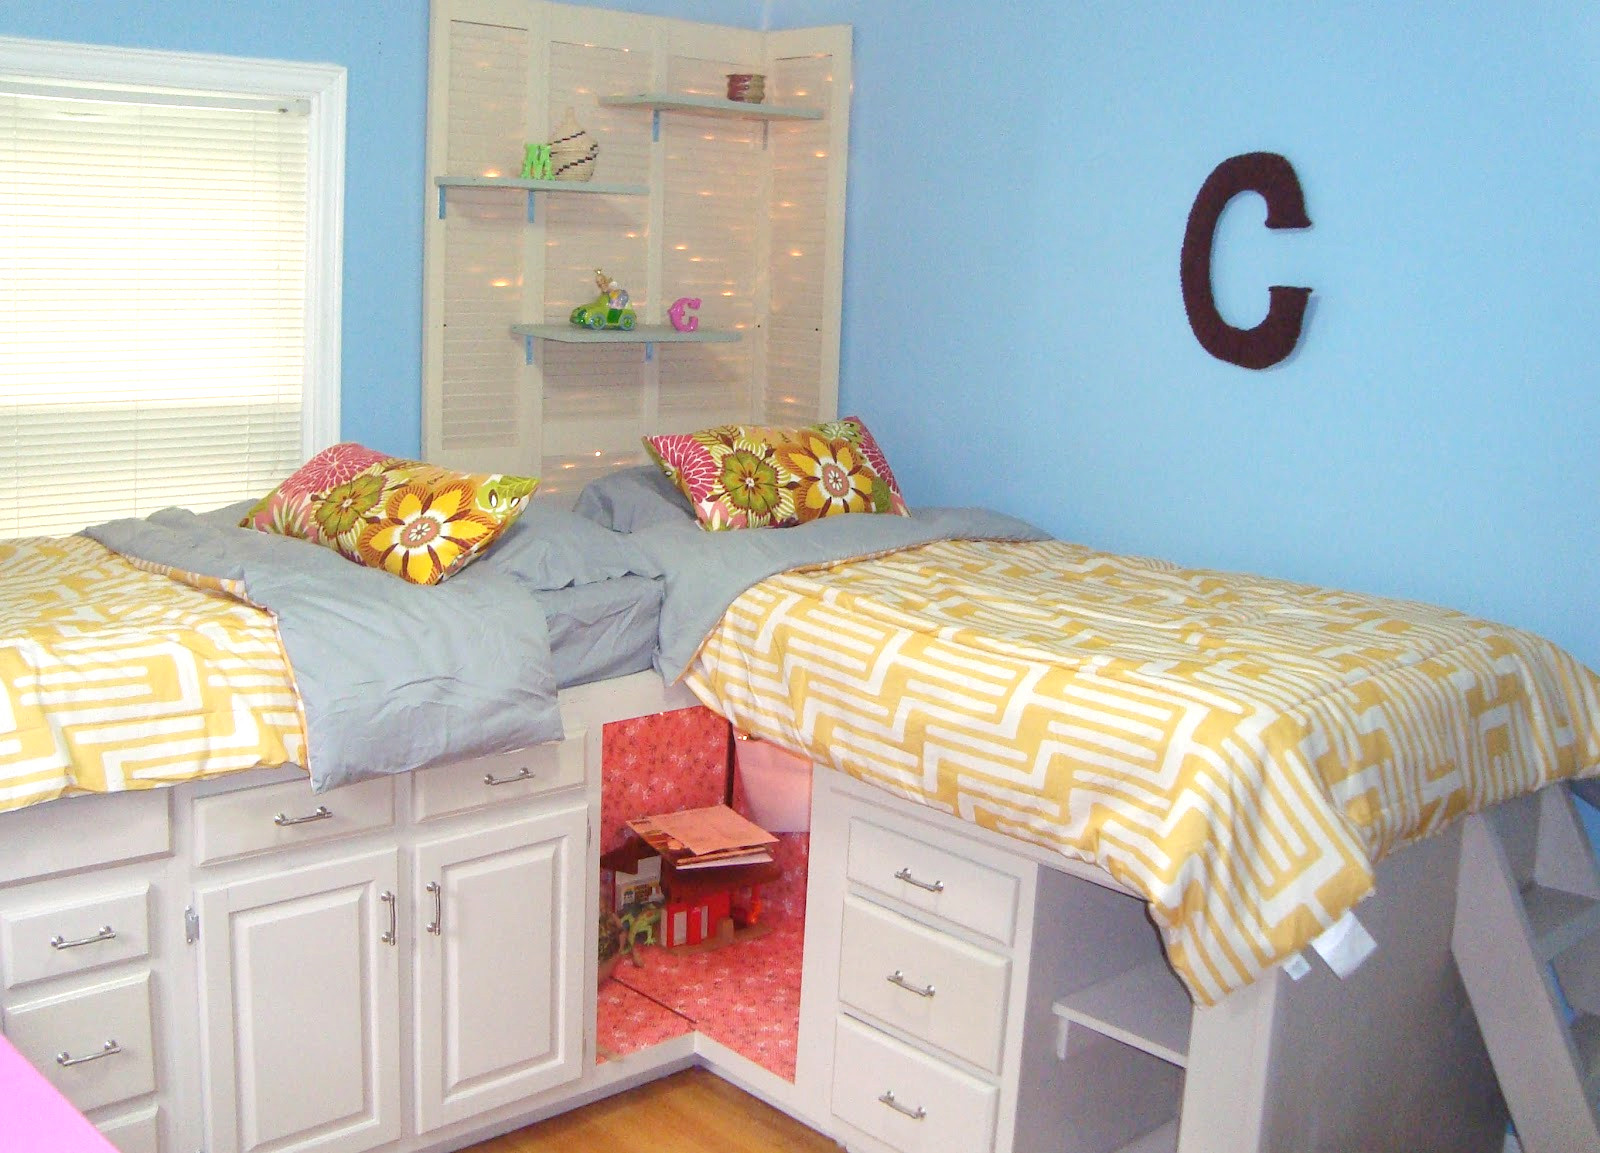 Diy Kids Bed With Storage  8 DIY Storage Beds to Add Extra Space and Organization to